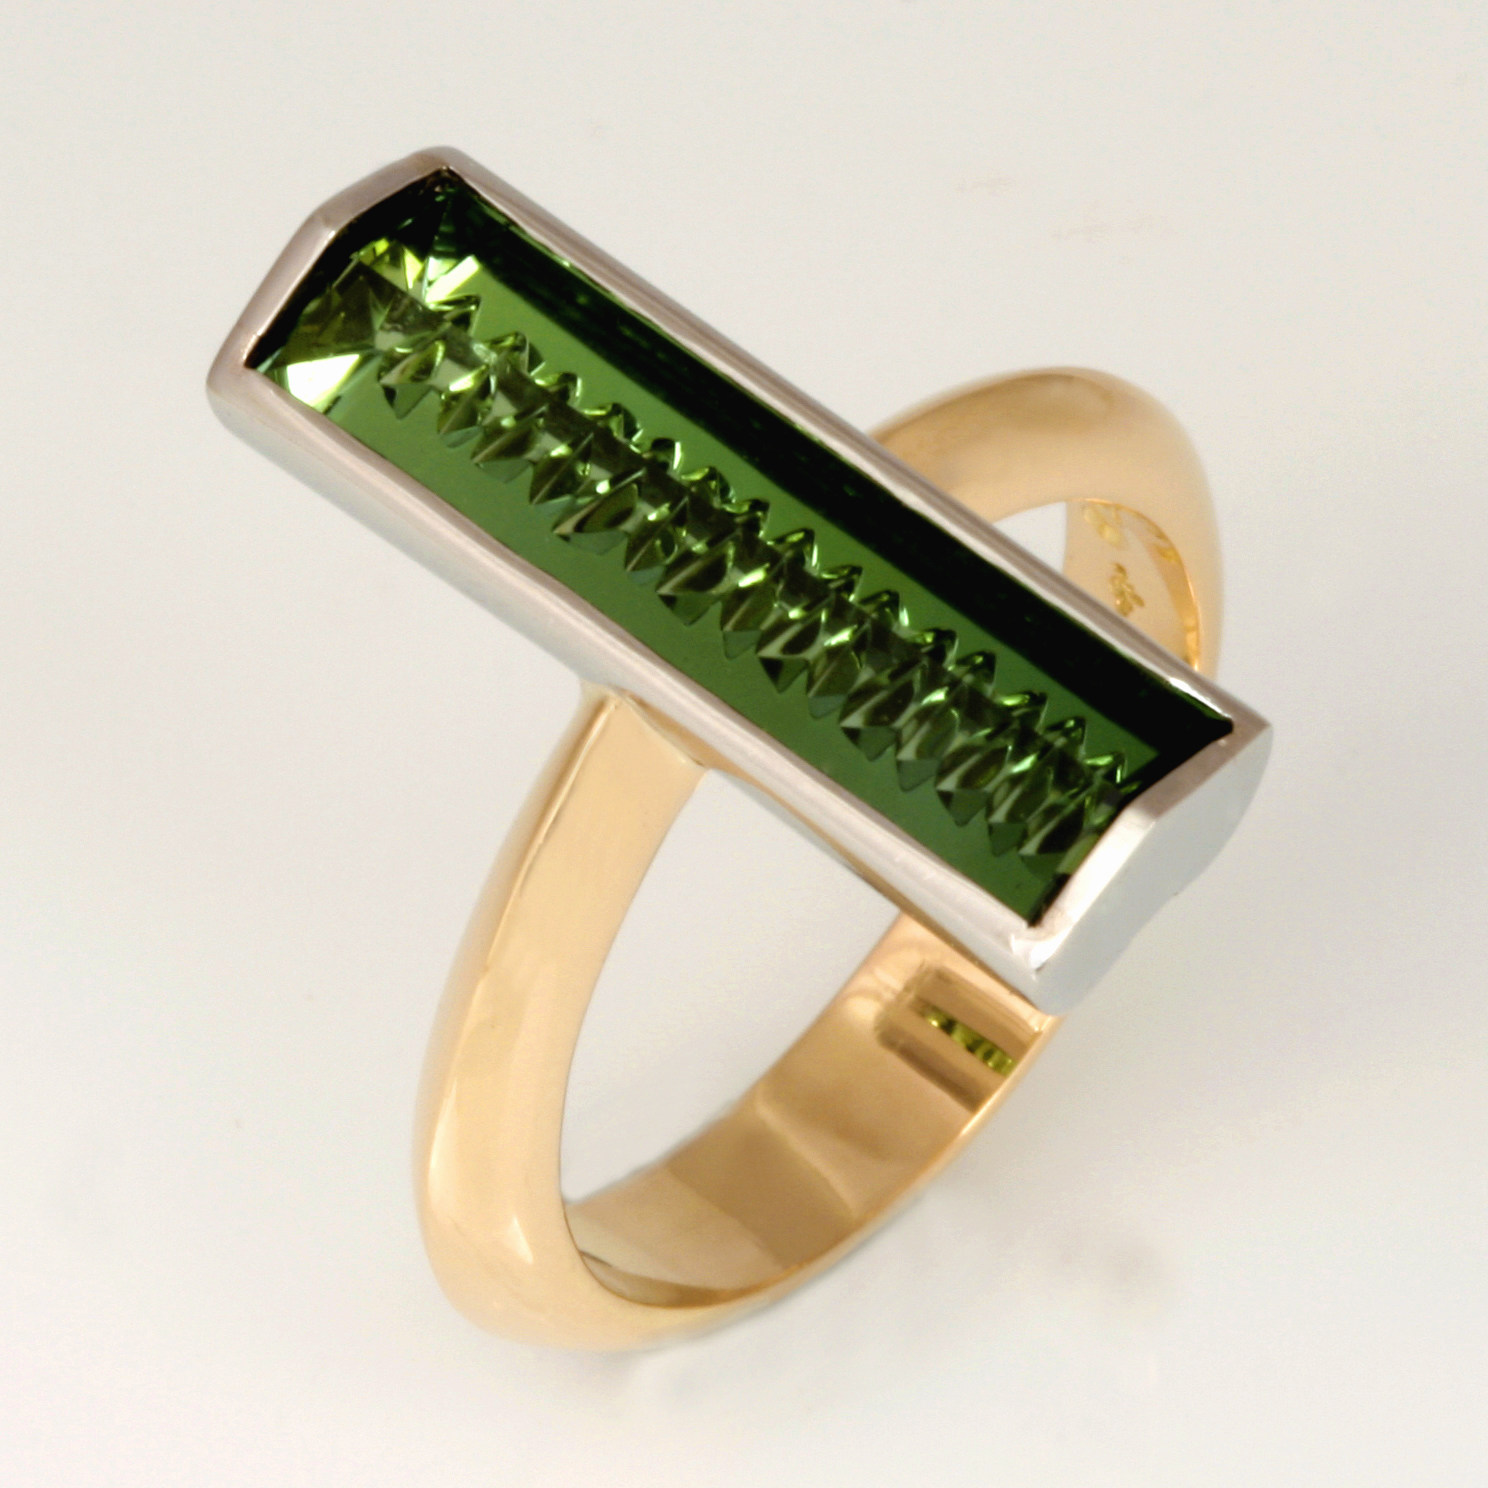 Handmade ladies 18ct yellow gold and palladium fancy cut green tourmaline ring